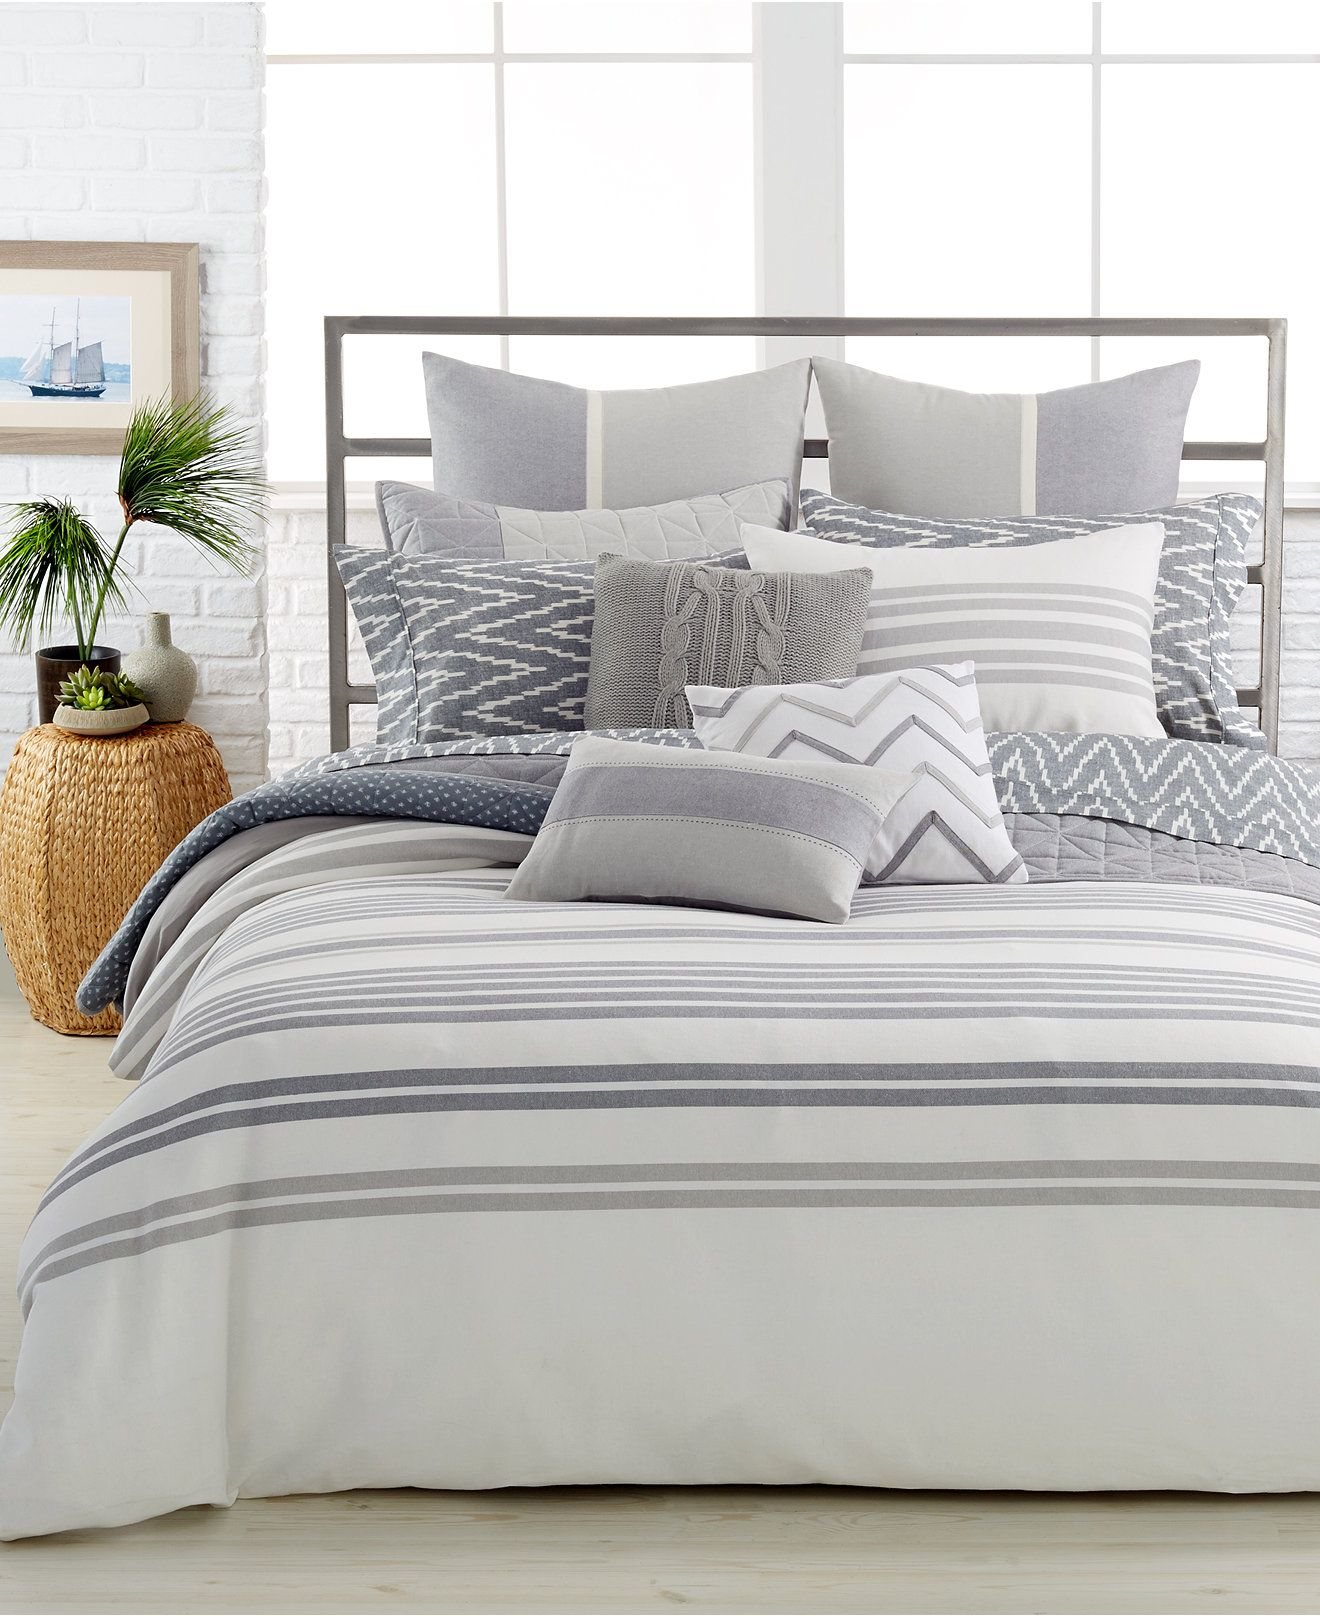 Nautica Home Decor: Nautica Home Margate Twin Duvet Cover Mini Set